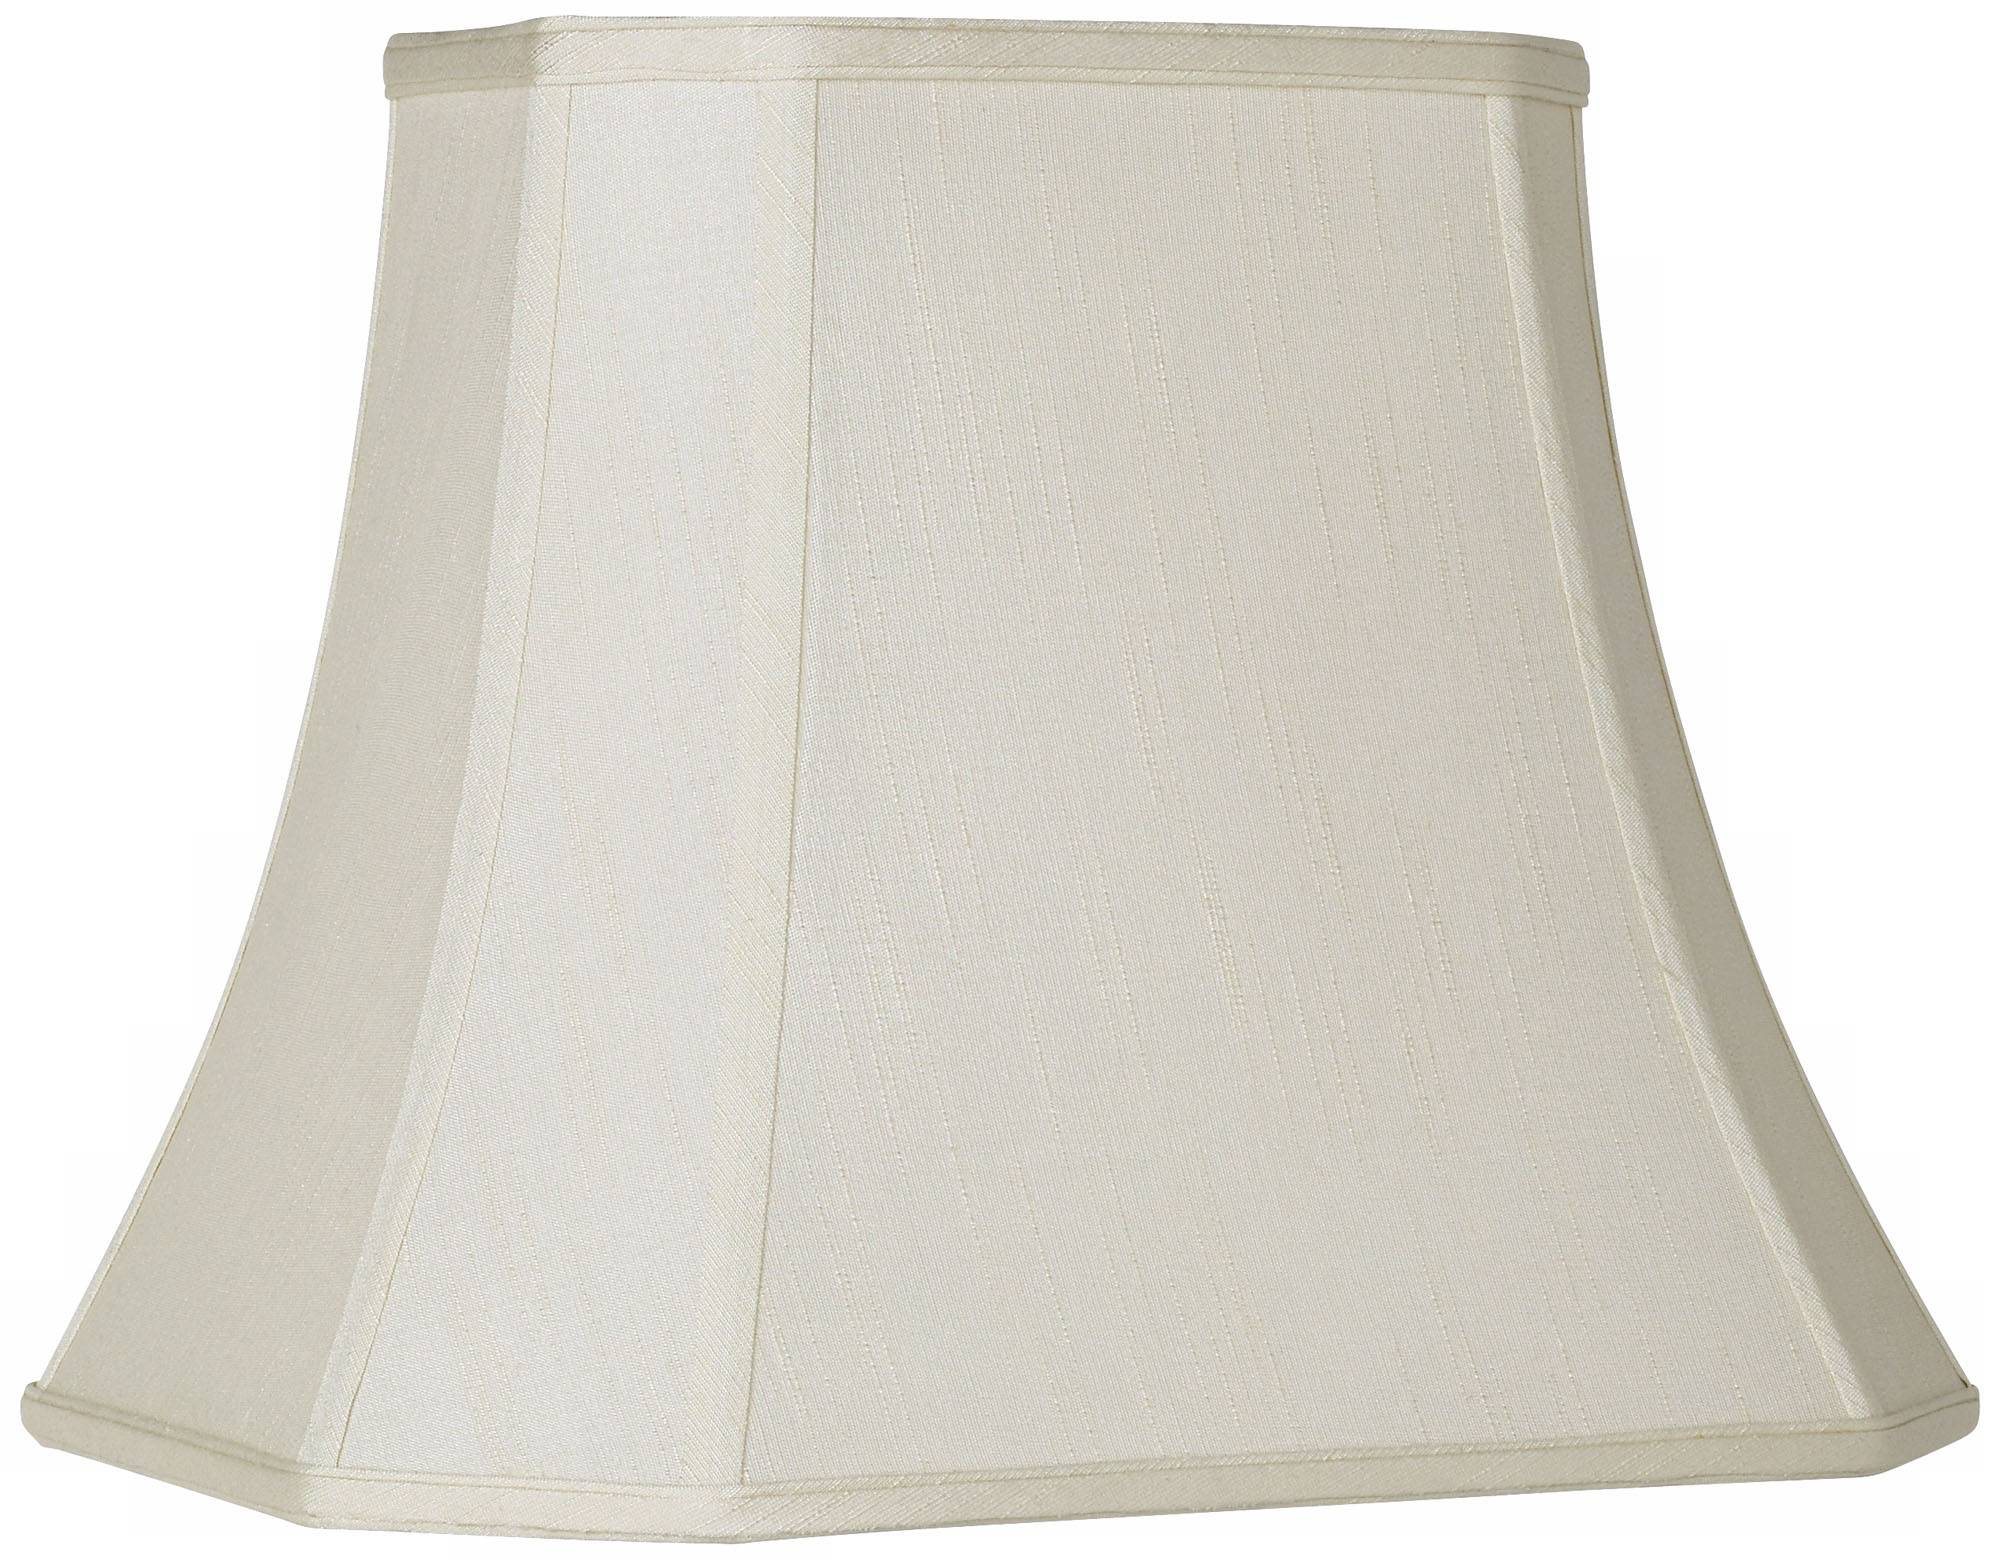 Imperial creme rectangle cut corner shade 10x16x13 spider